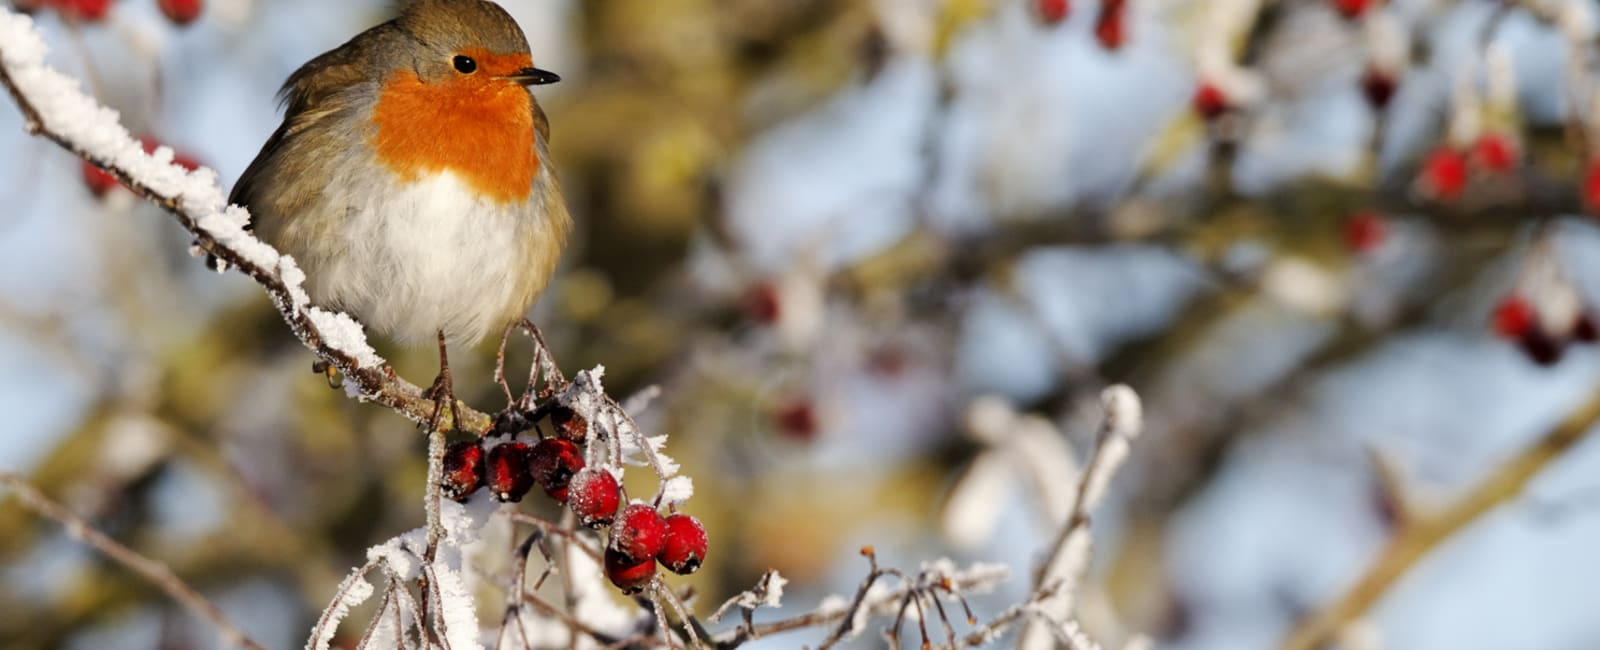 A robin on a snowy branch